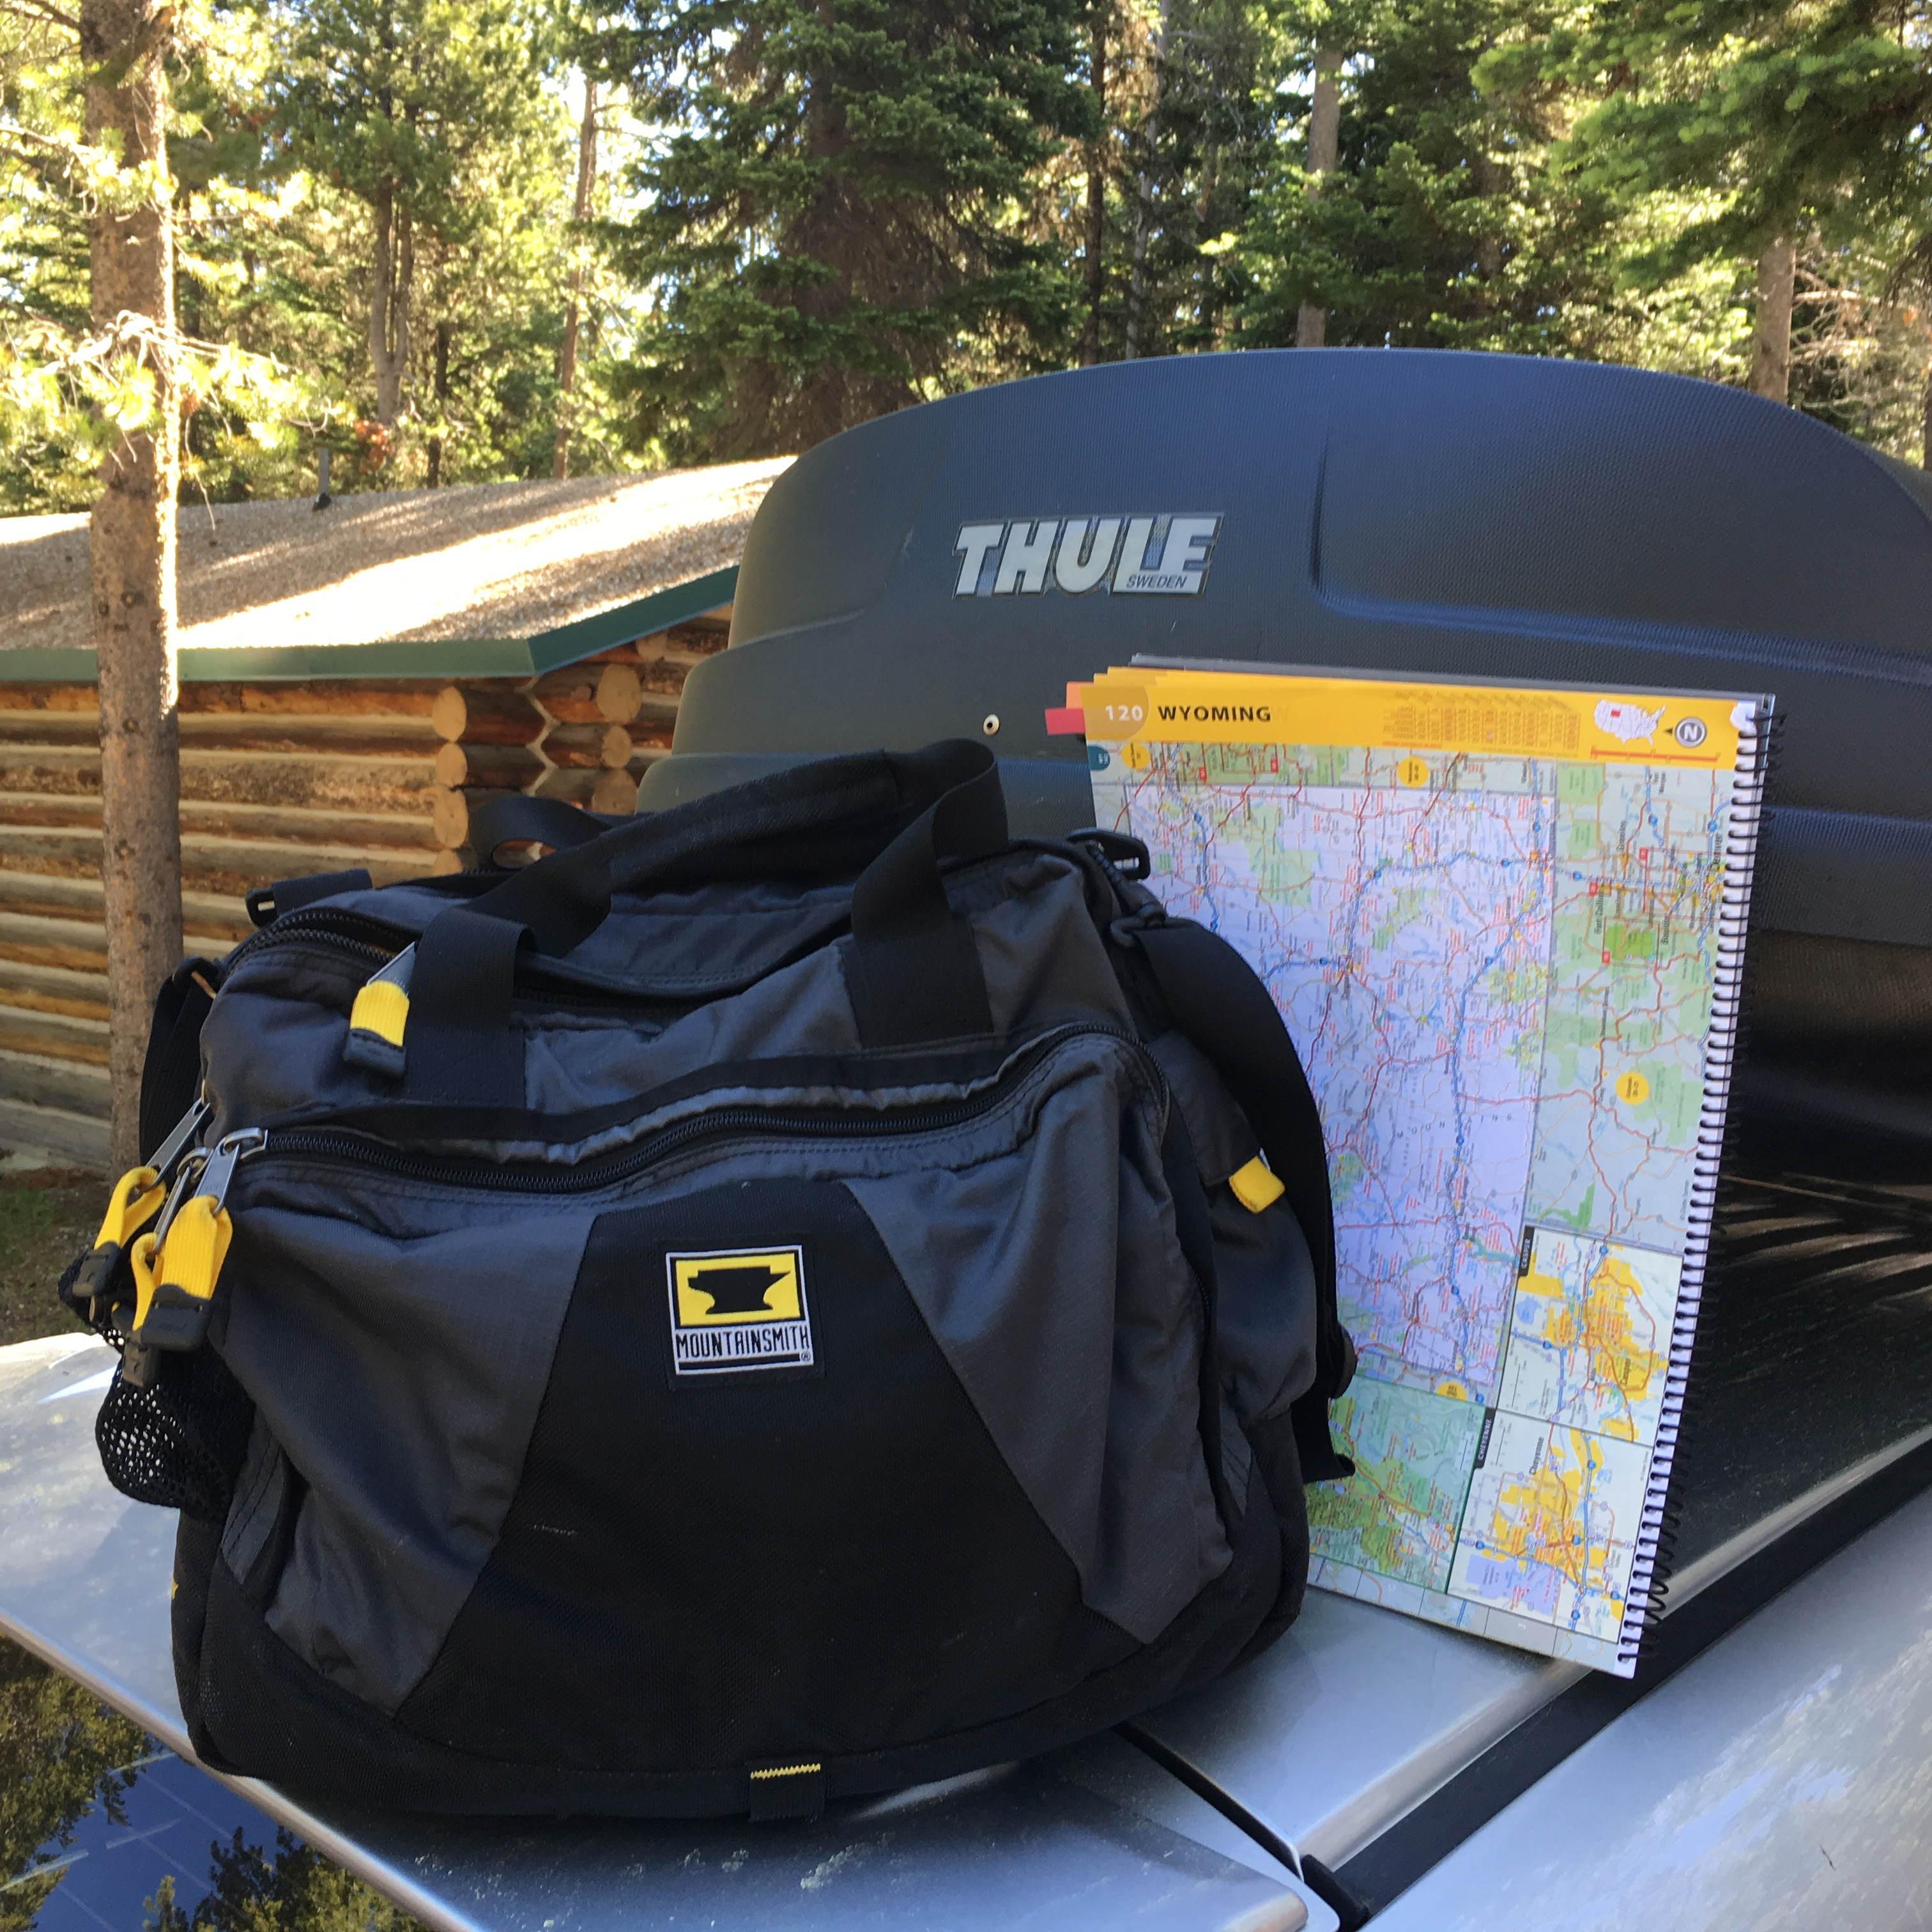 Thule and Mountainsmith make the trip easier